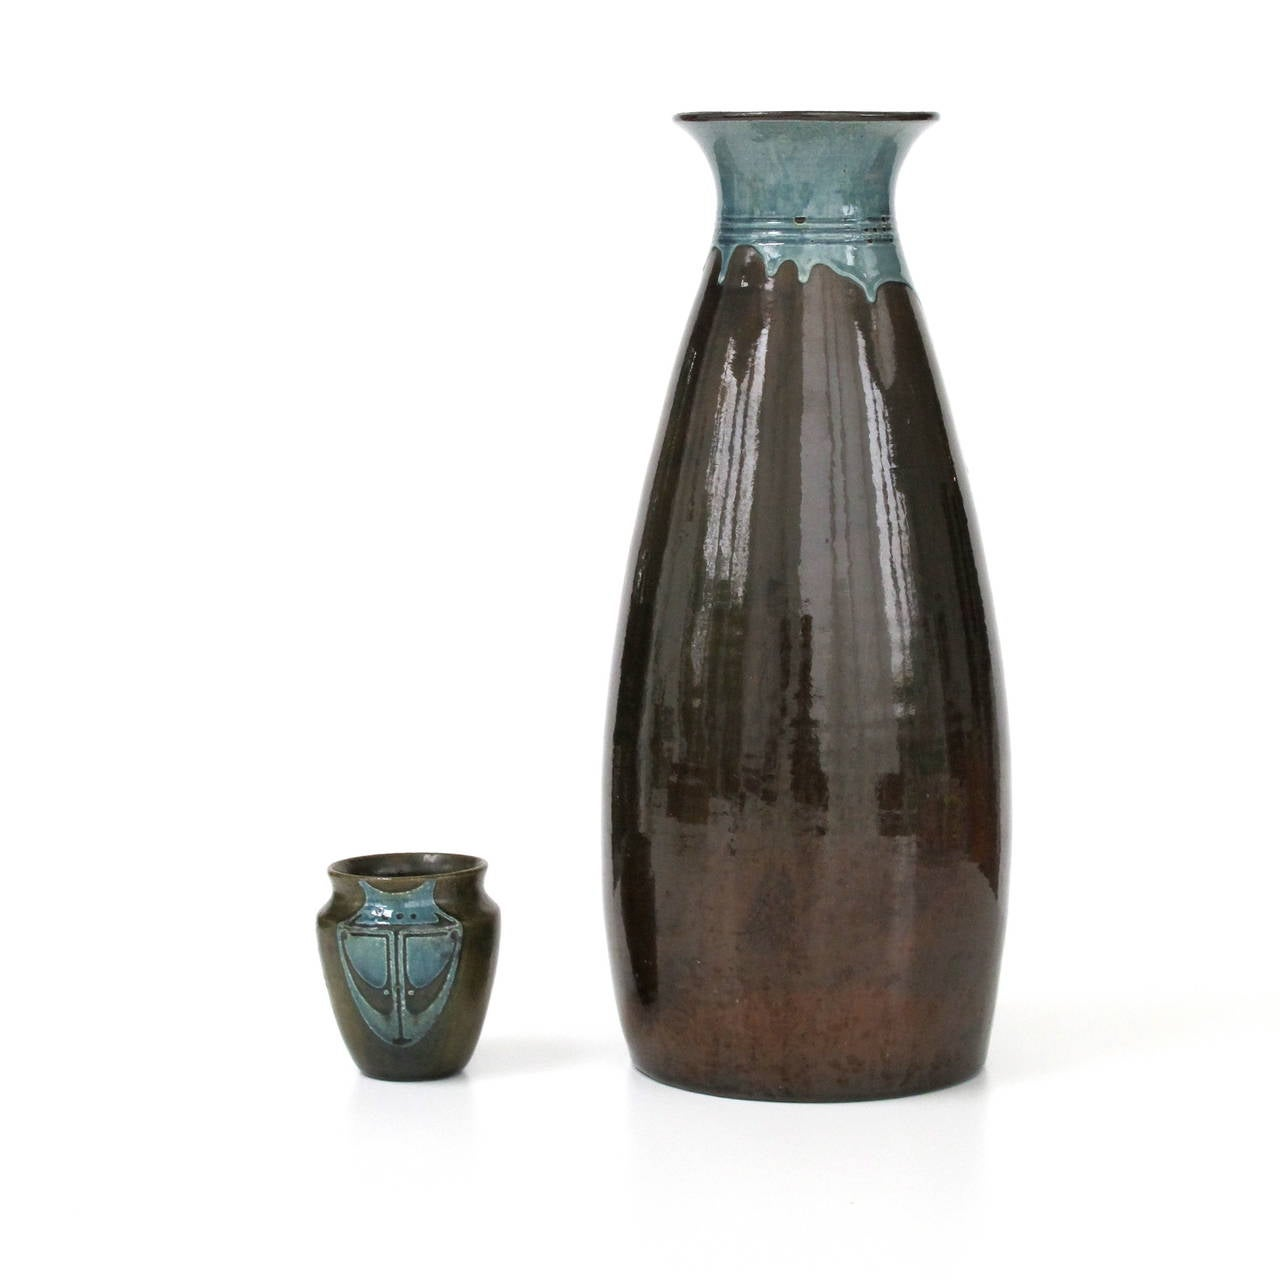 W c brouwer very large ceramic vase with drip glaze ca 1910 at 1stdibs - Object deco wc ...